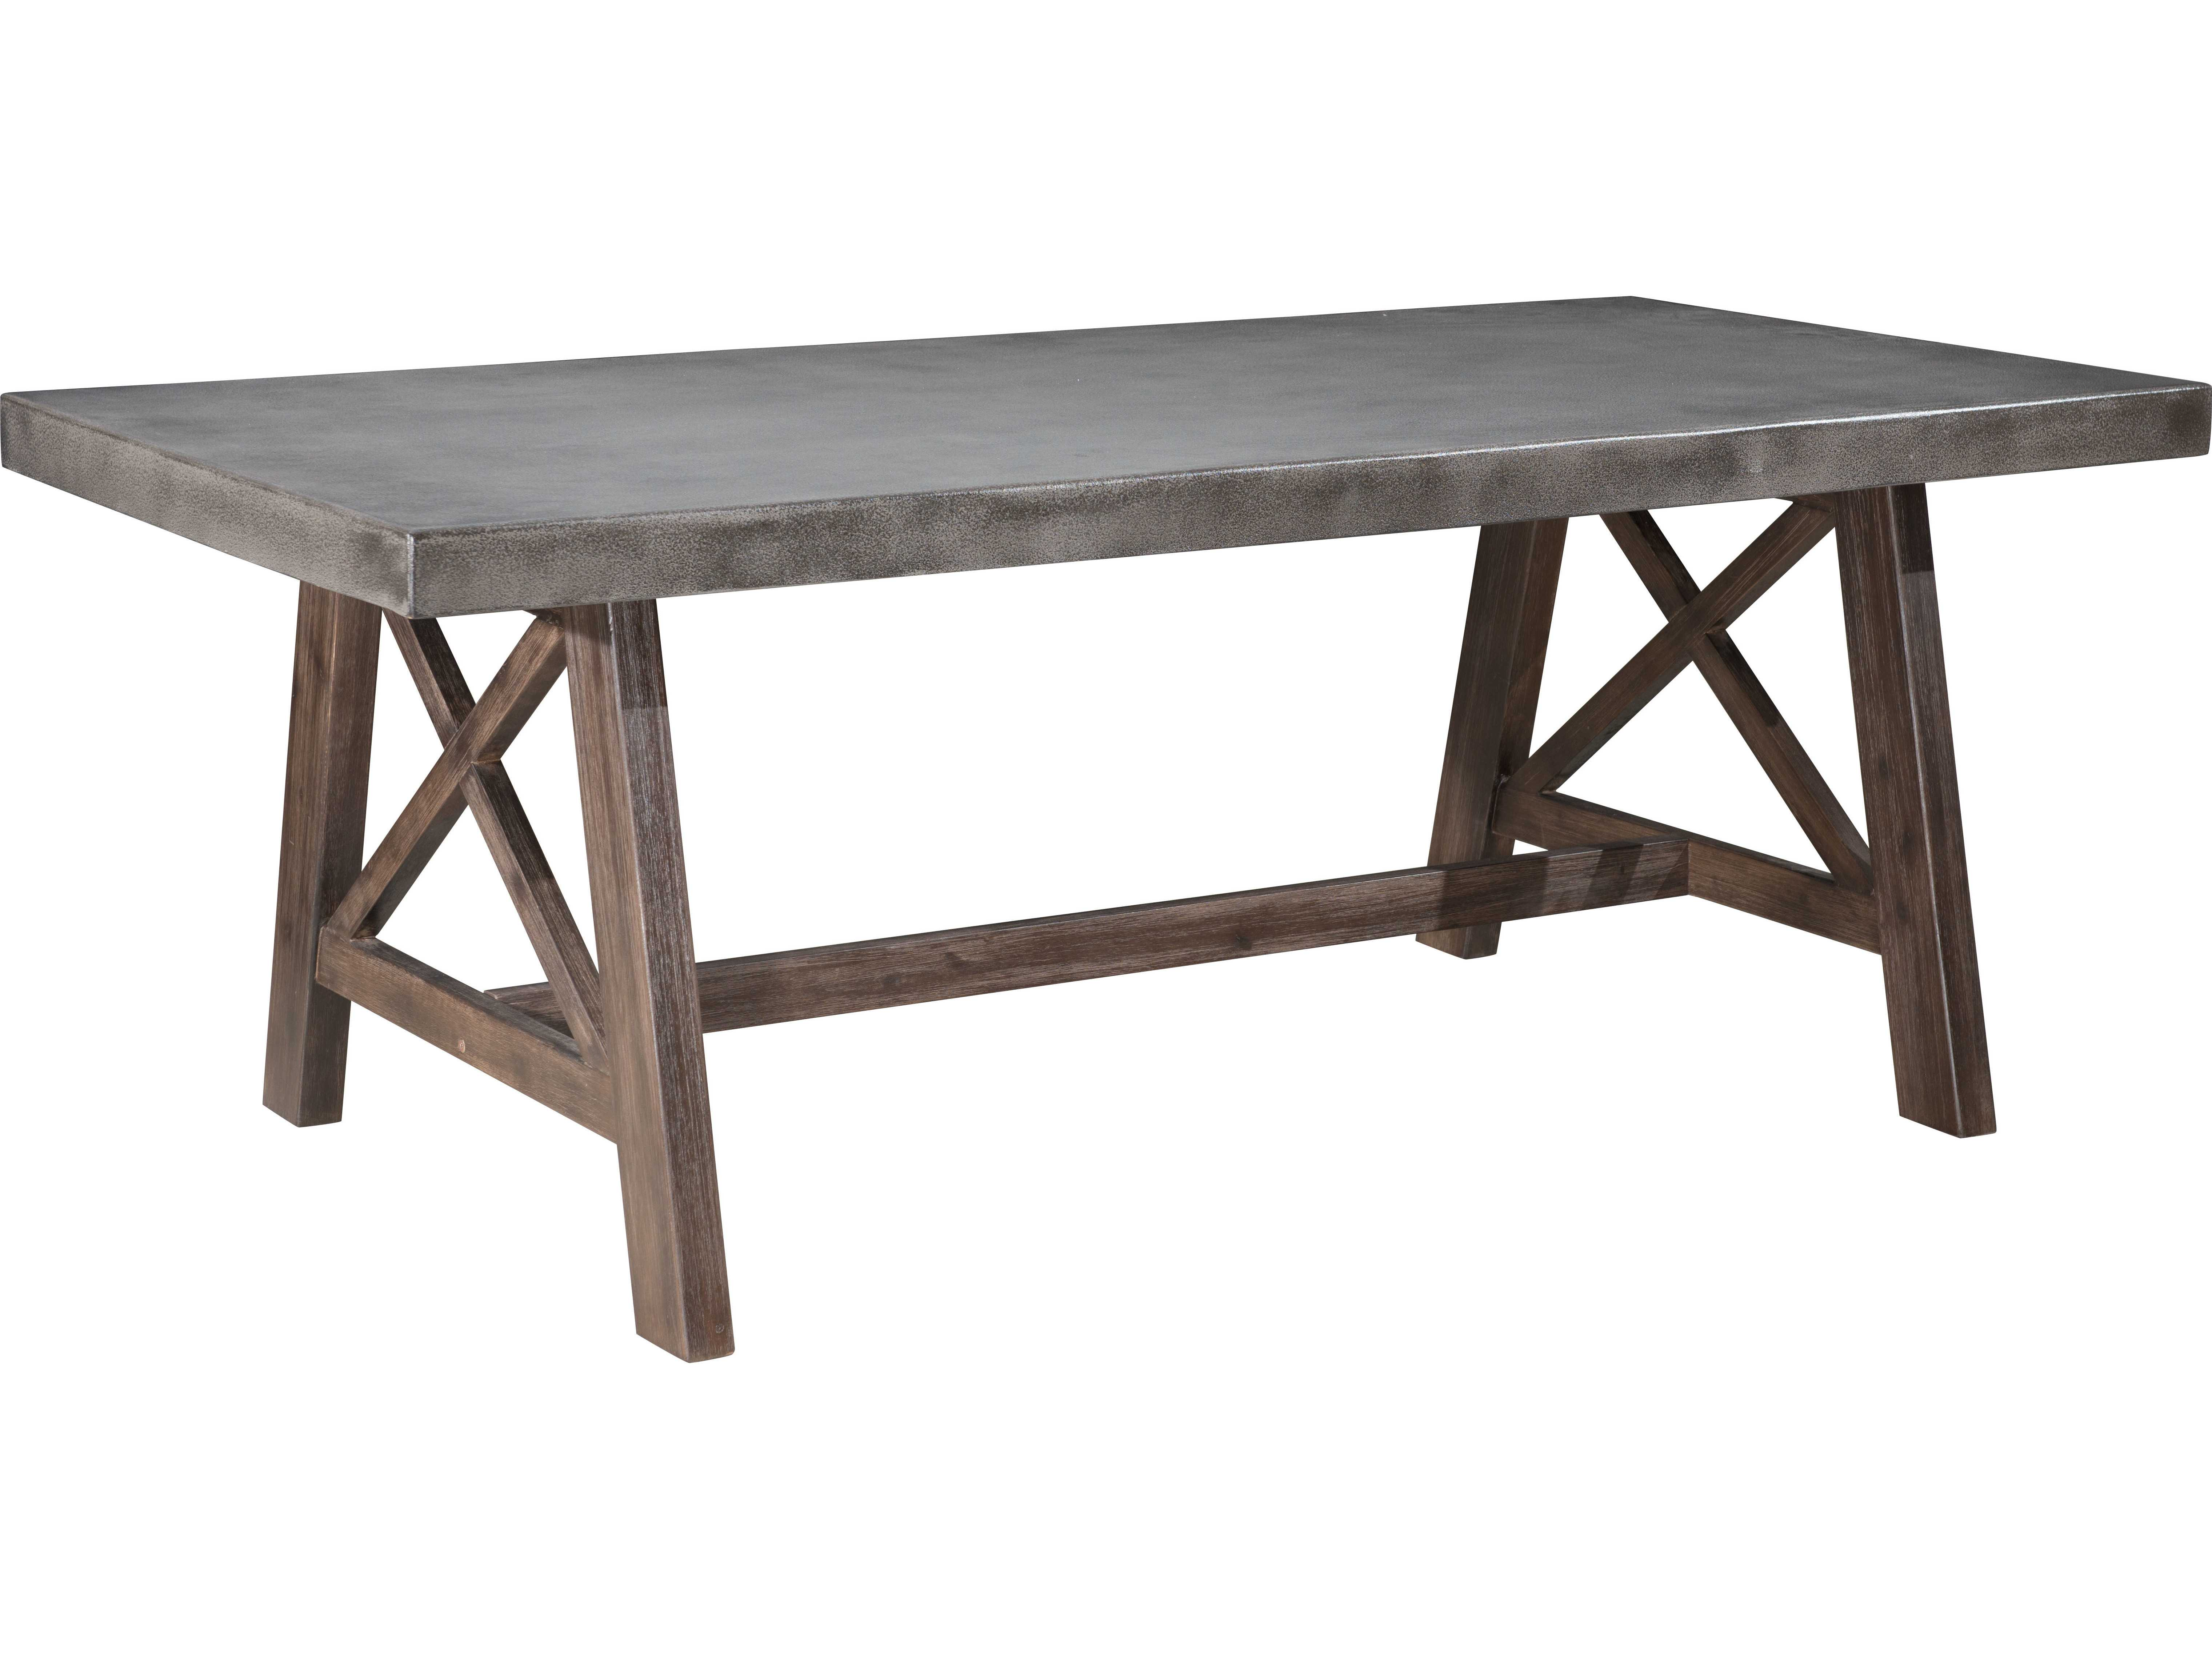 Patio Tables Dining: Zuo Outdoor Ford Wood 78.70 X 39.40 Rectangular Dining